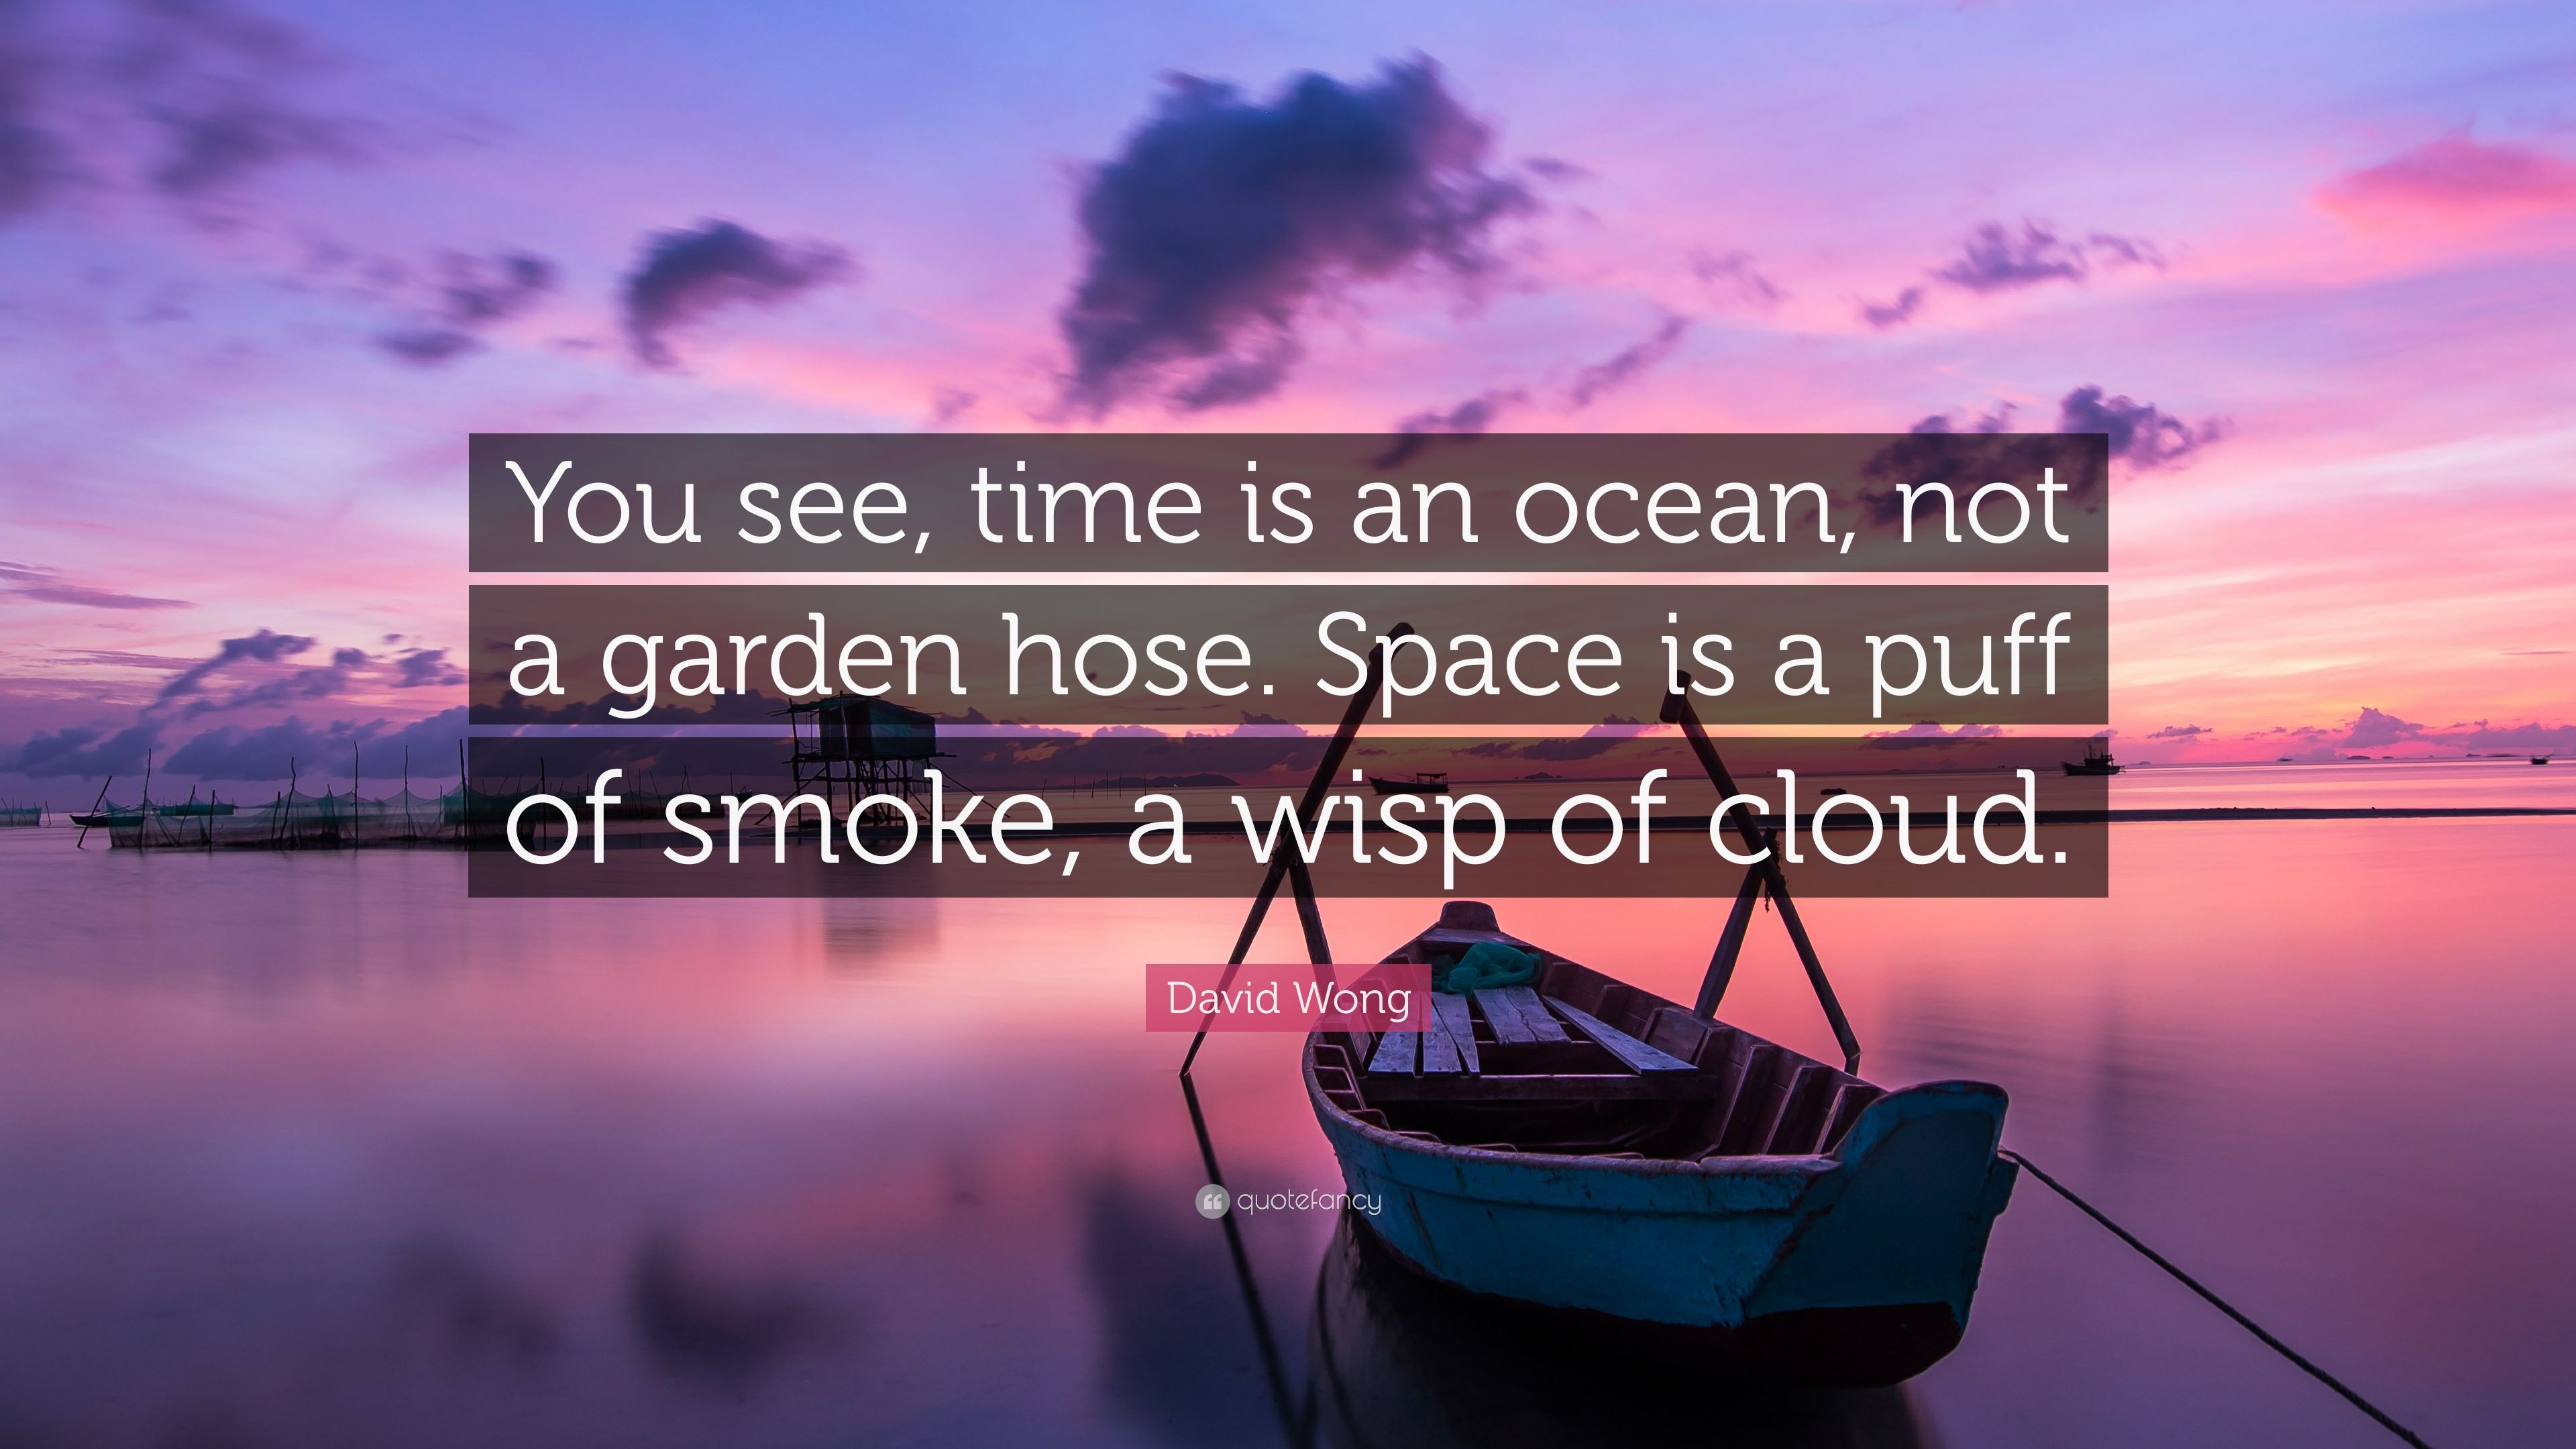 david wong quote u201cyou see time is an ocean not a garden hose